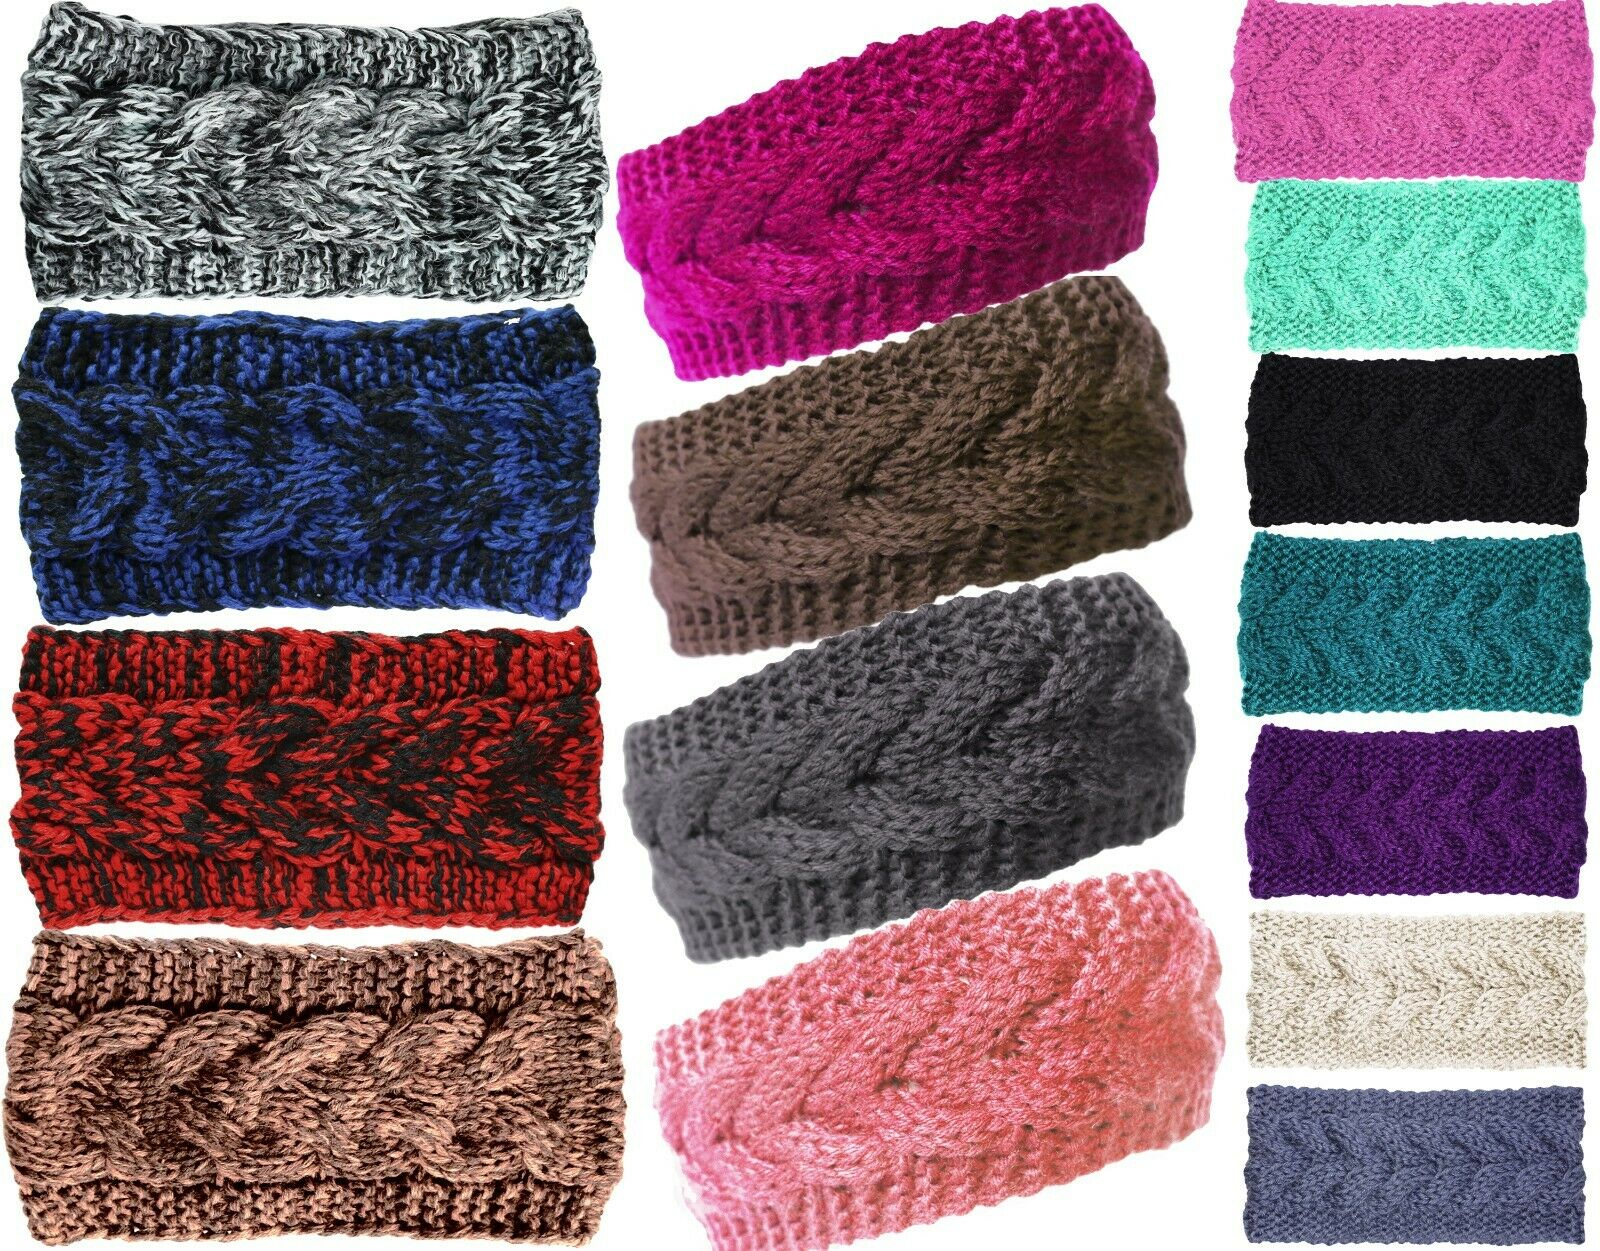 Plain Braided Winter Knit Headband Earwarmer Clothing, Shoes & Accessories